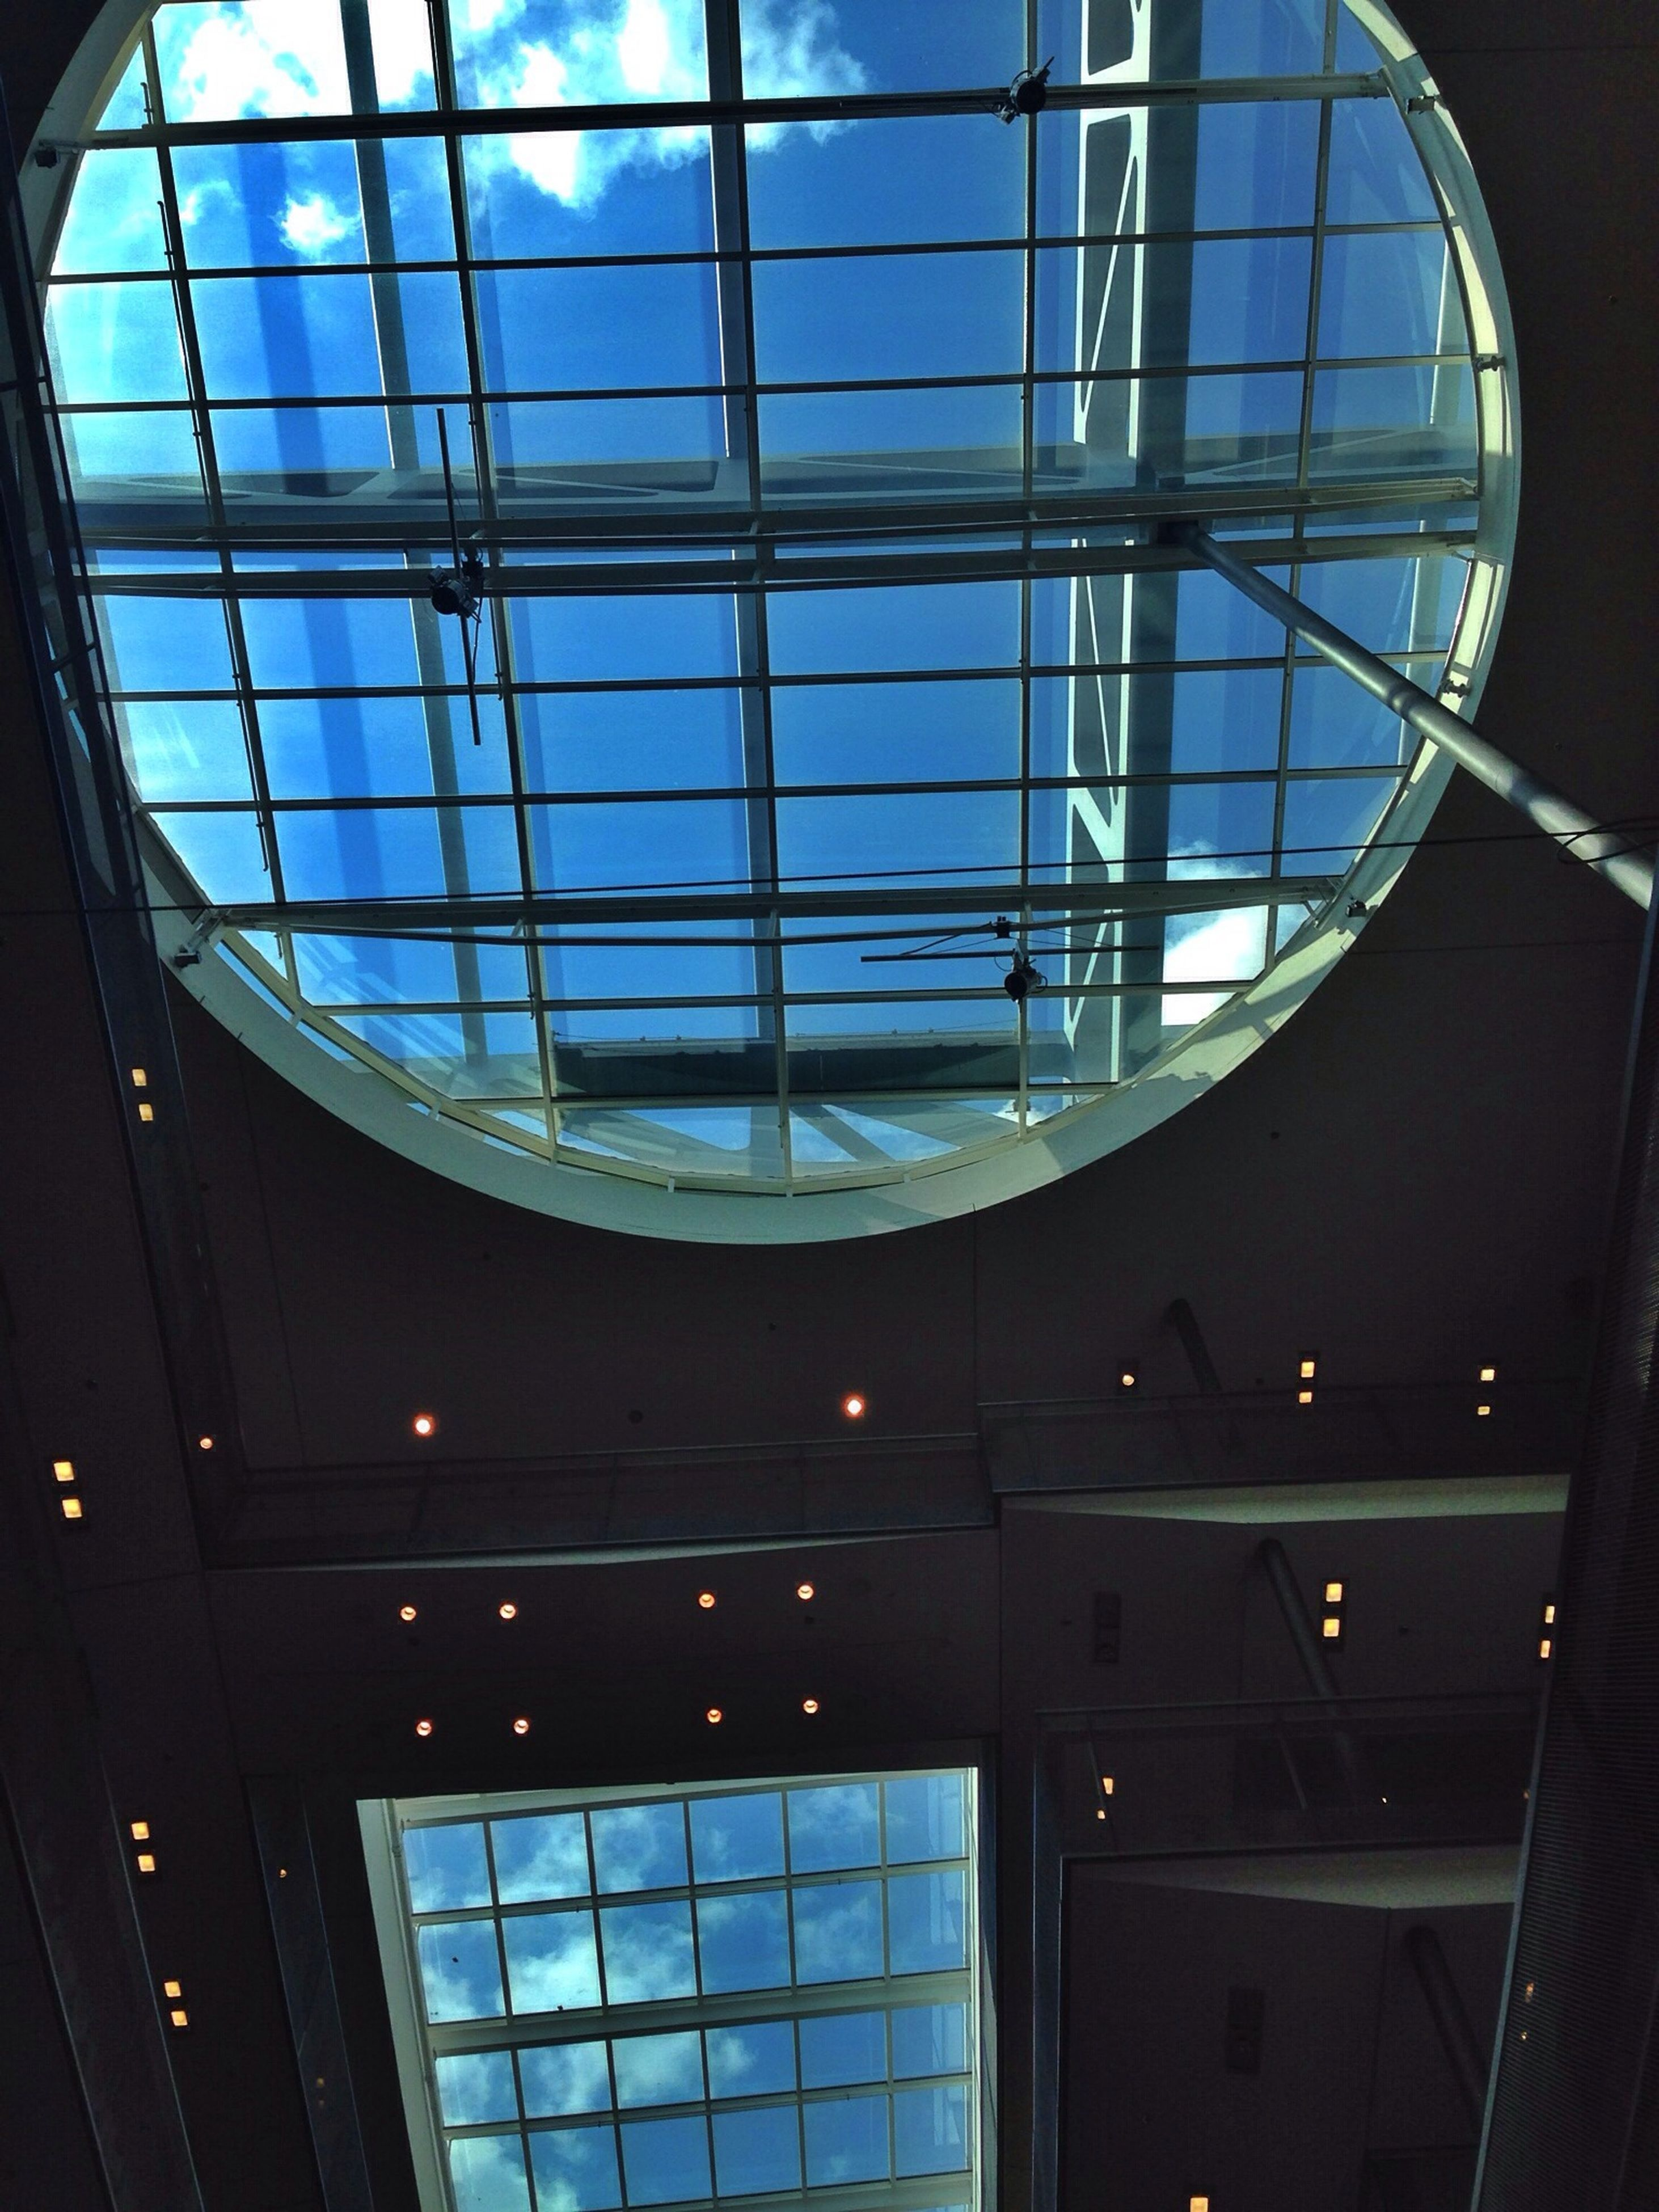 architecture, indoors, glass - material, built structure, window, transparent, modern, low angle view, reflection, skylight, building exterior, building, ceiling, interior, glass, architectural feature, geometric shape, sky, no people, day